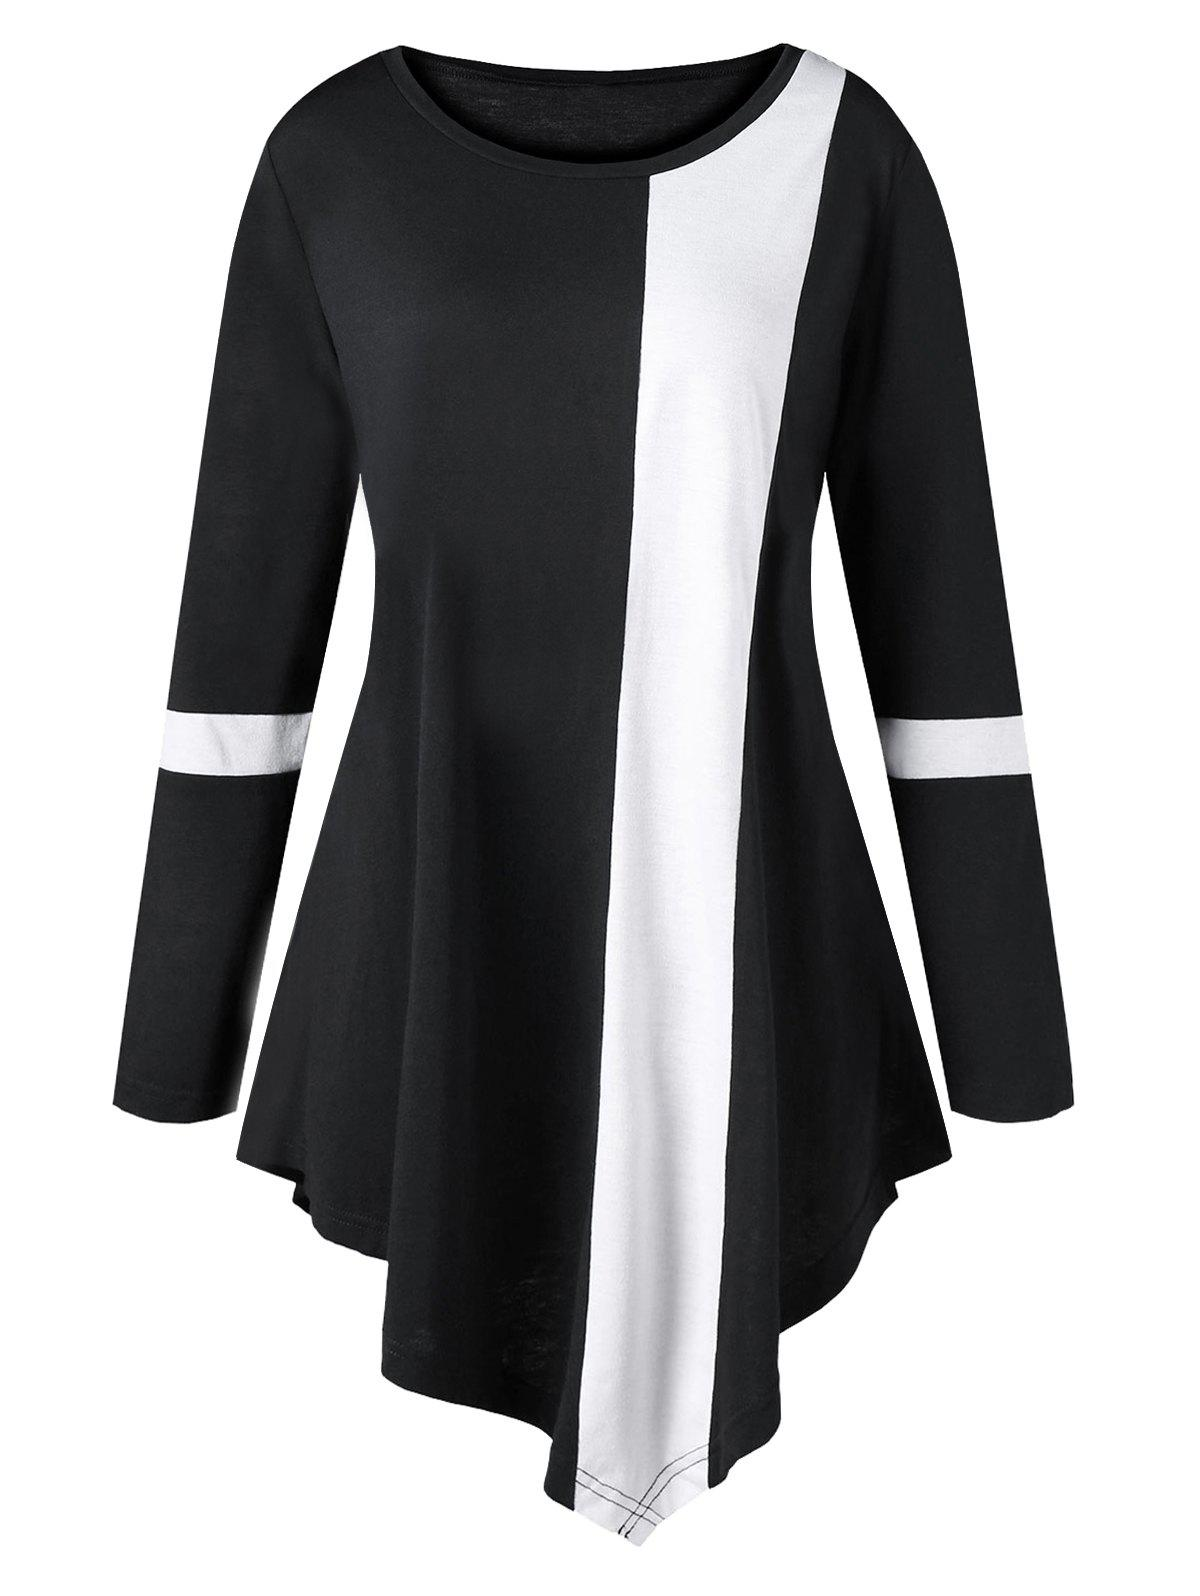 Plus Size Asymmetric Two Tone Color TopWOMEN<br><br>Size: 5XL; Color: BLACK; Material: Polyester,Spandex; Shirt Length: Long; Sleeve Length: Full; Collar: Round Neck; Style: Fashion; Season: Fall,Spring; Pattern Type: Others; Weight: 0.3030kg; Package Contents: 1 x Top;